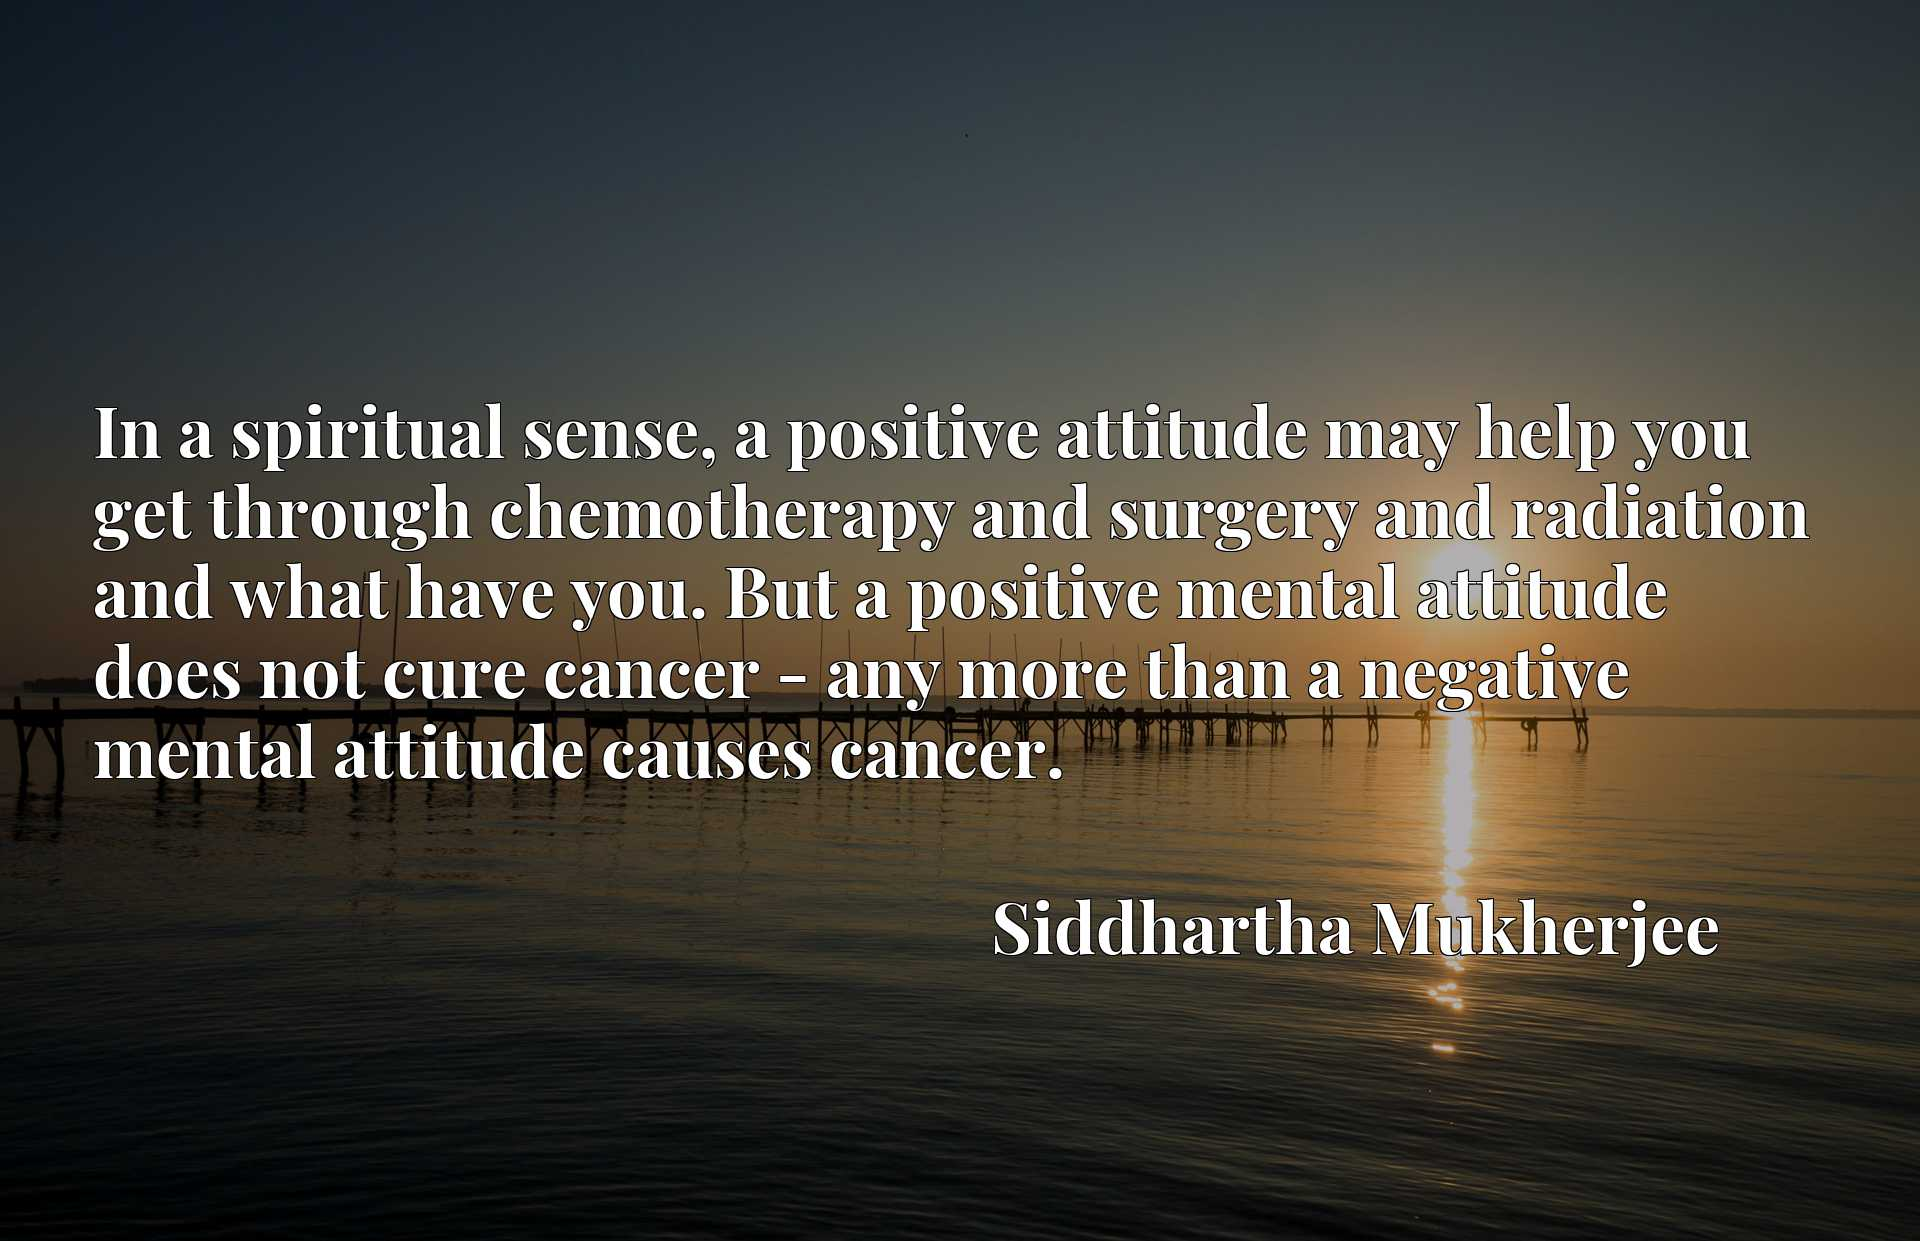 In a spiritual sense, a positive attitude may help you get through chemotherapy and surgery and radiation and what have you. But a positive mental attitude does not cure cancer - any more than a negative mental attitude causes cancer.